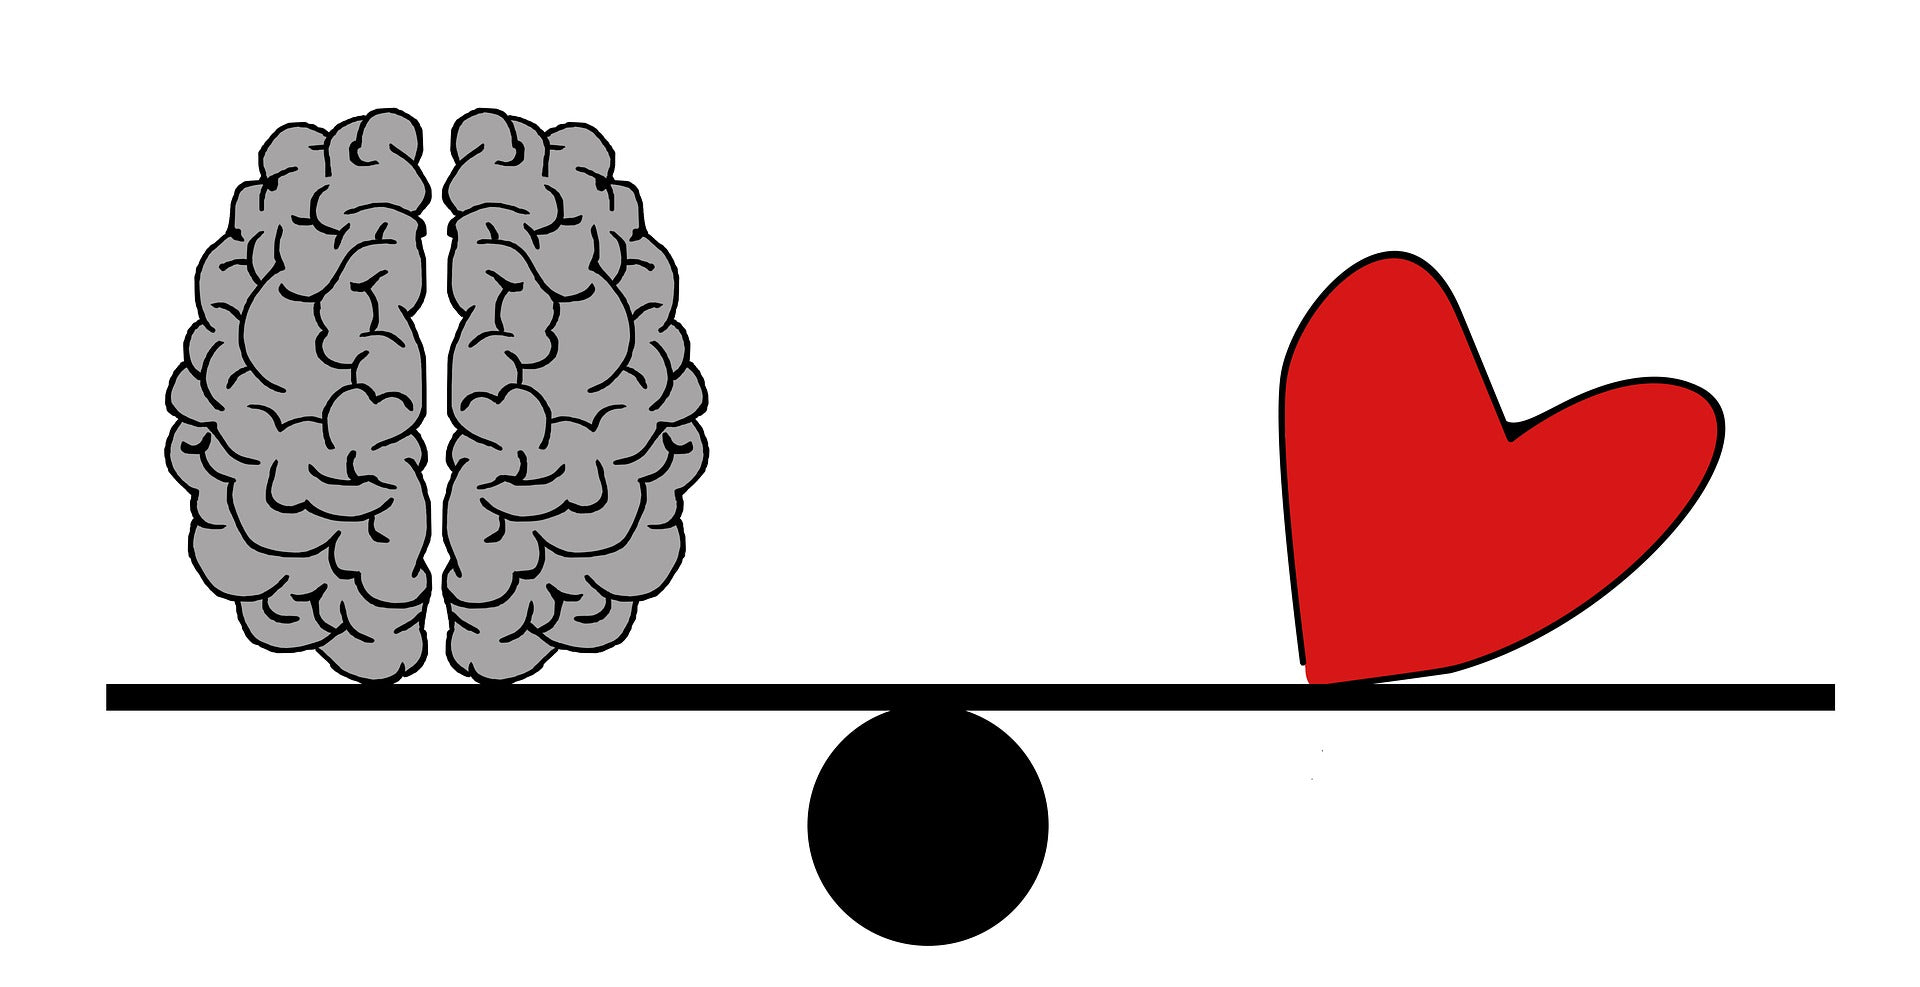 Heart and brain see saw